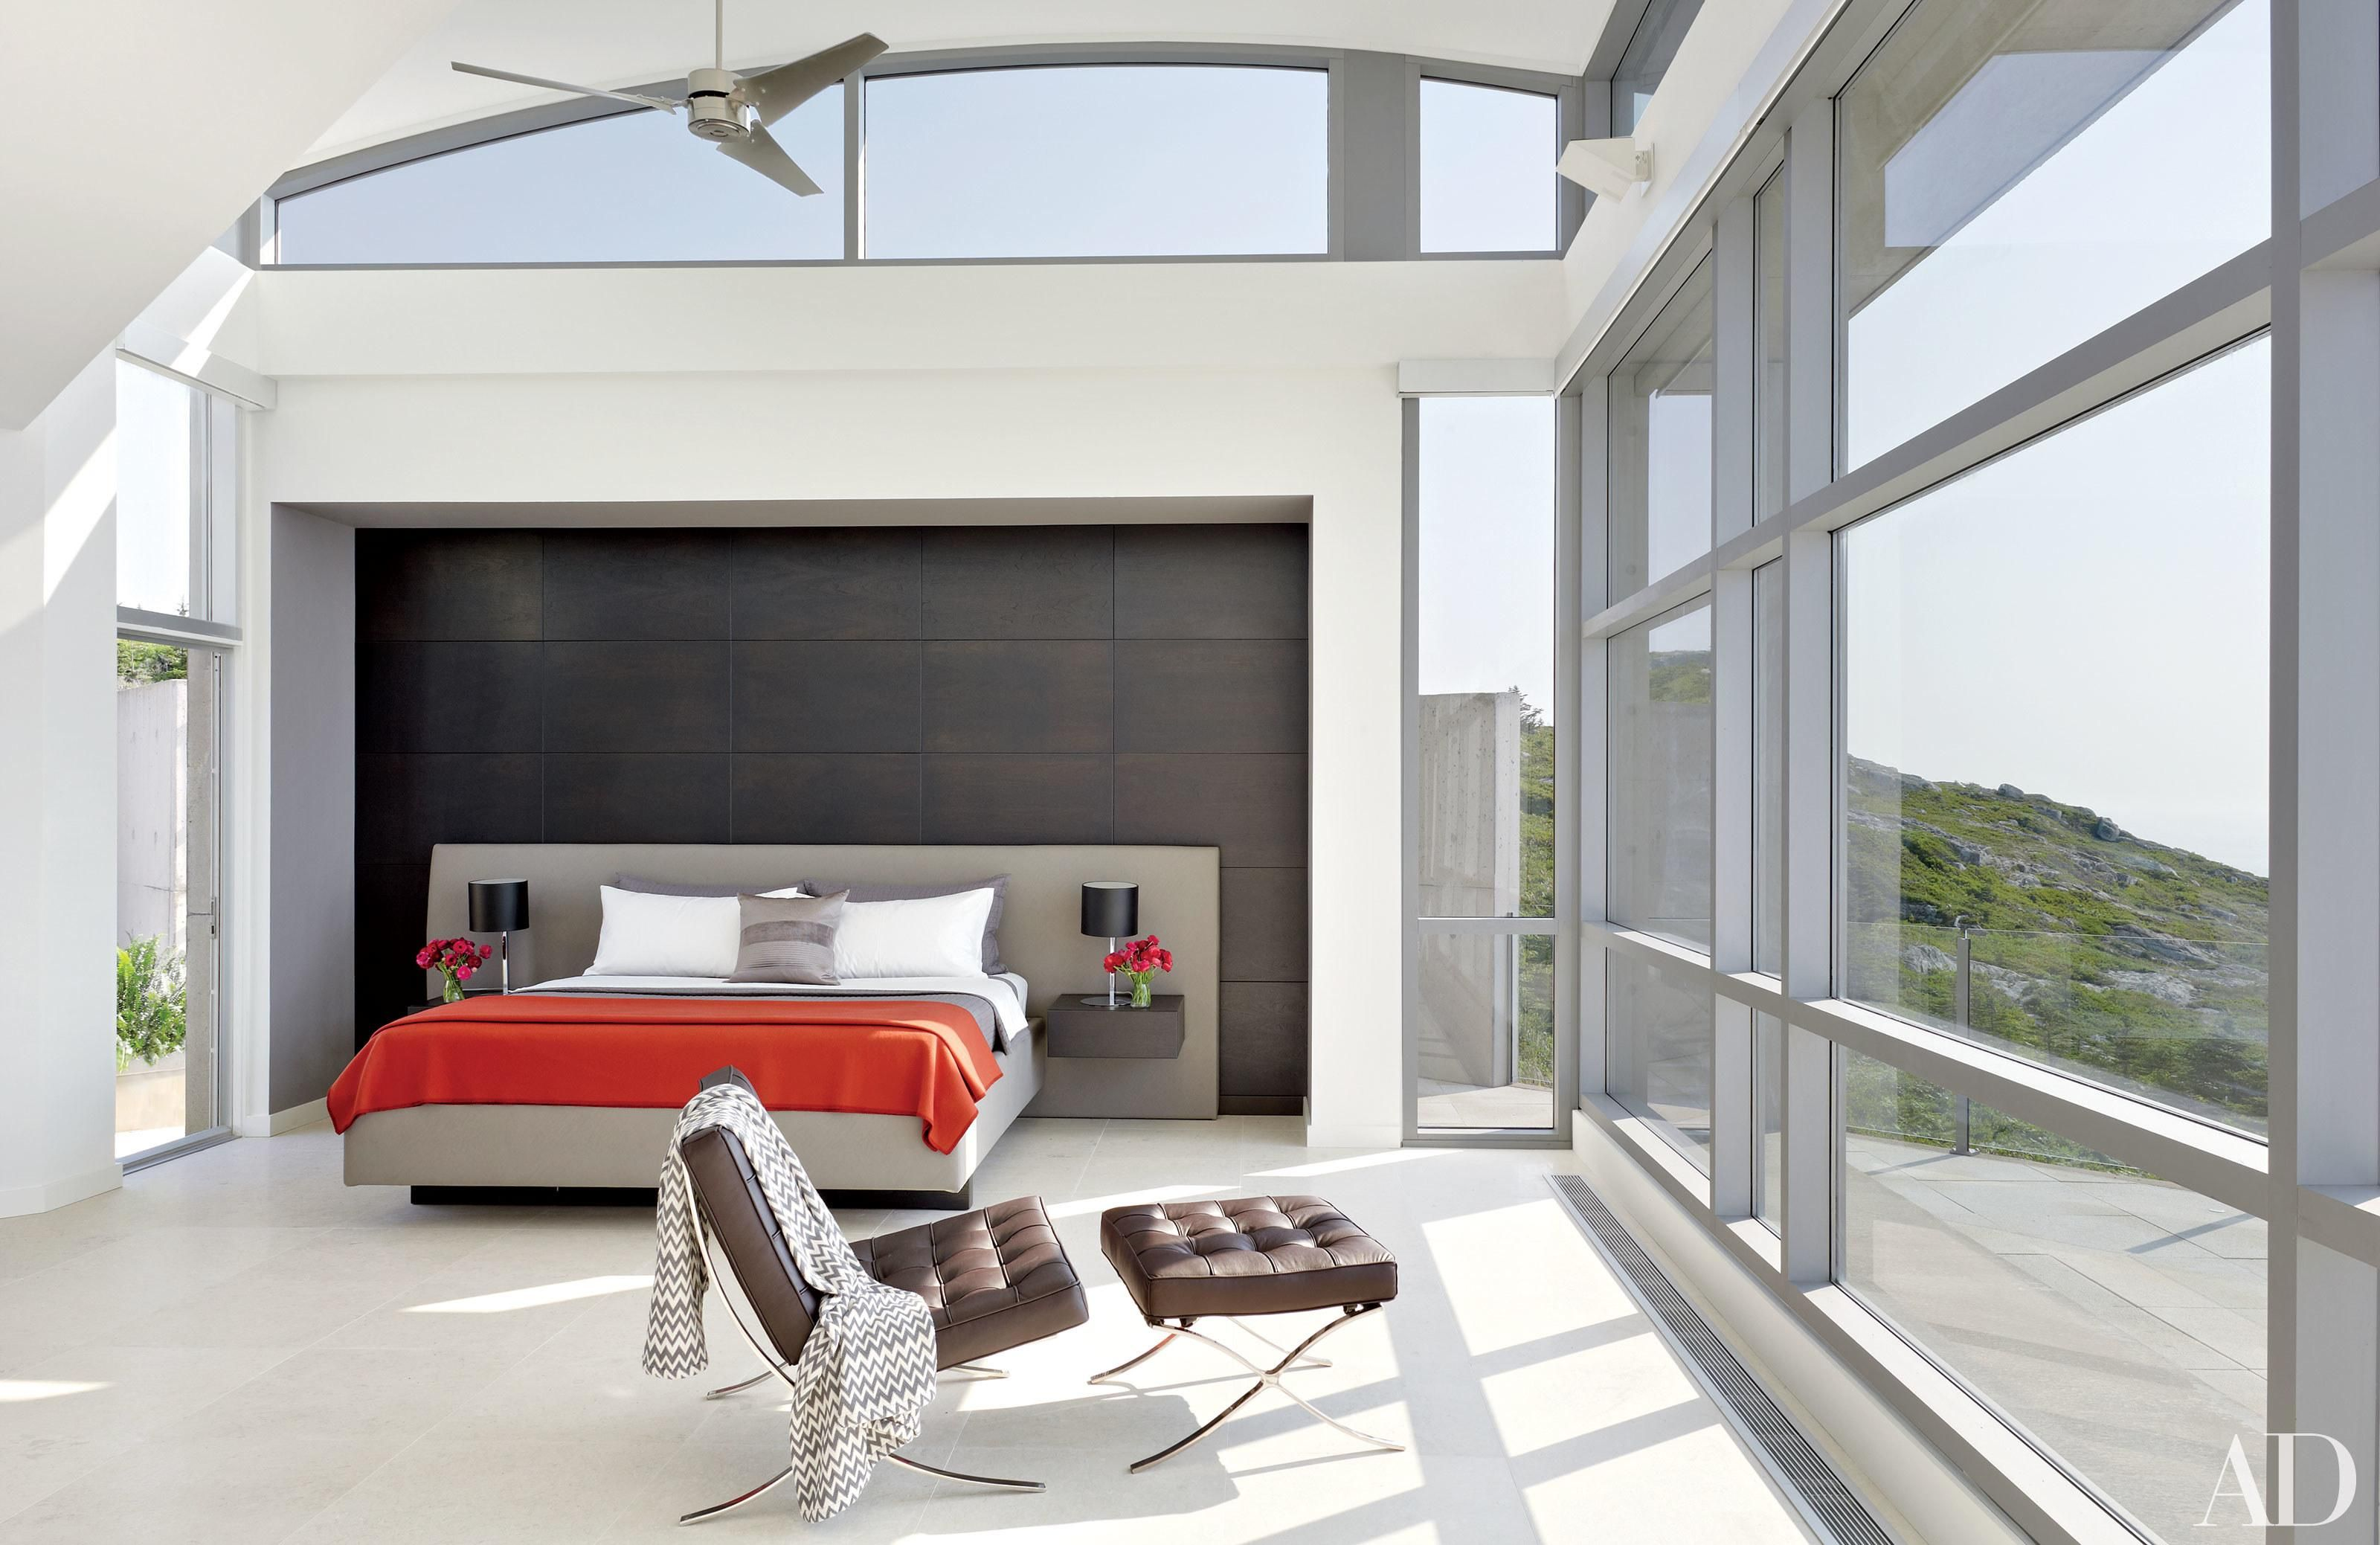 14 Sleek Contemporary Bedrooms from the Pages